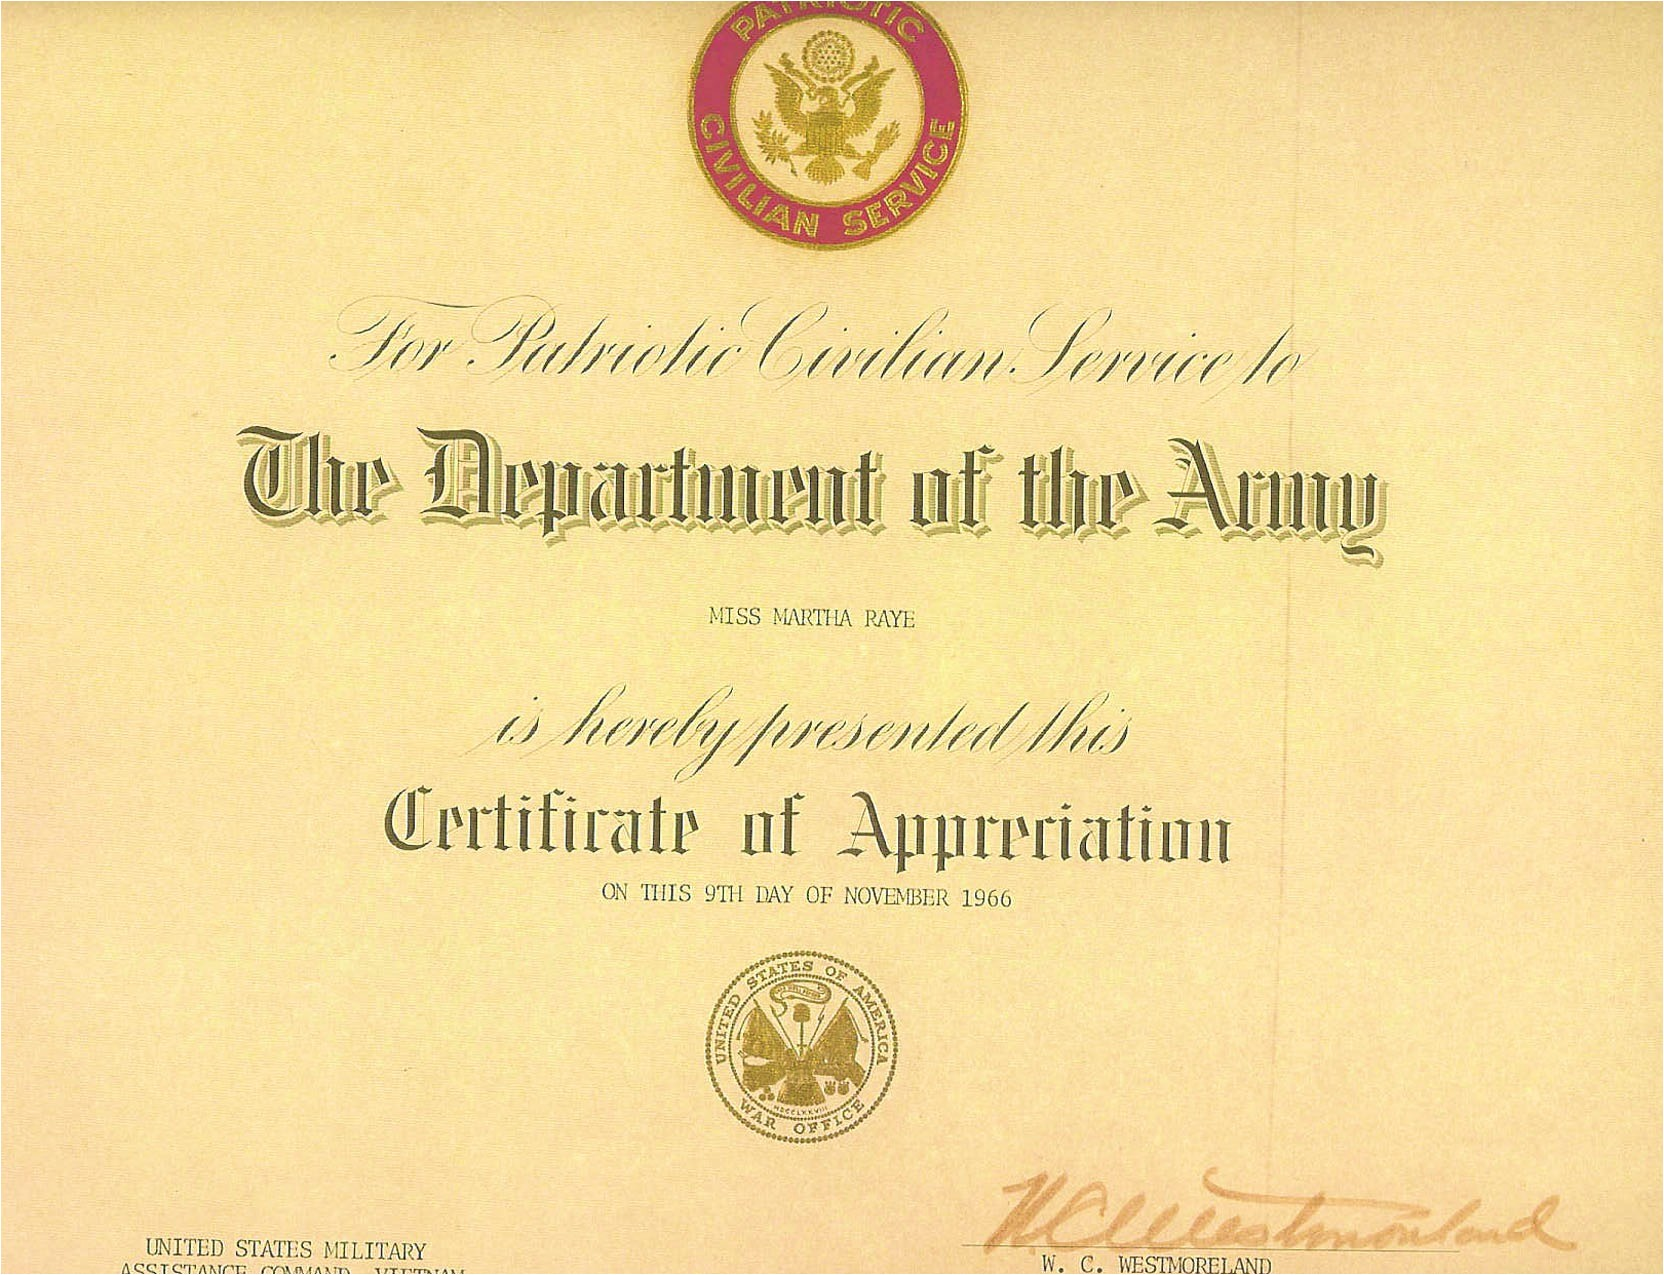 awards department of the army certificate appreciation for patriotic civilian service along with actual citation which shows date as being 18 19